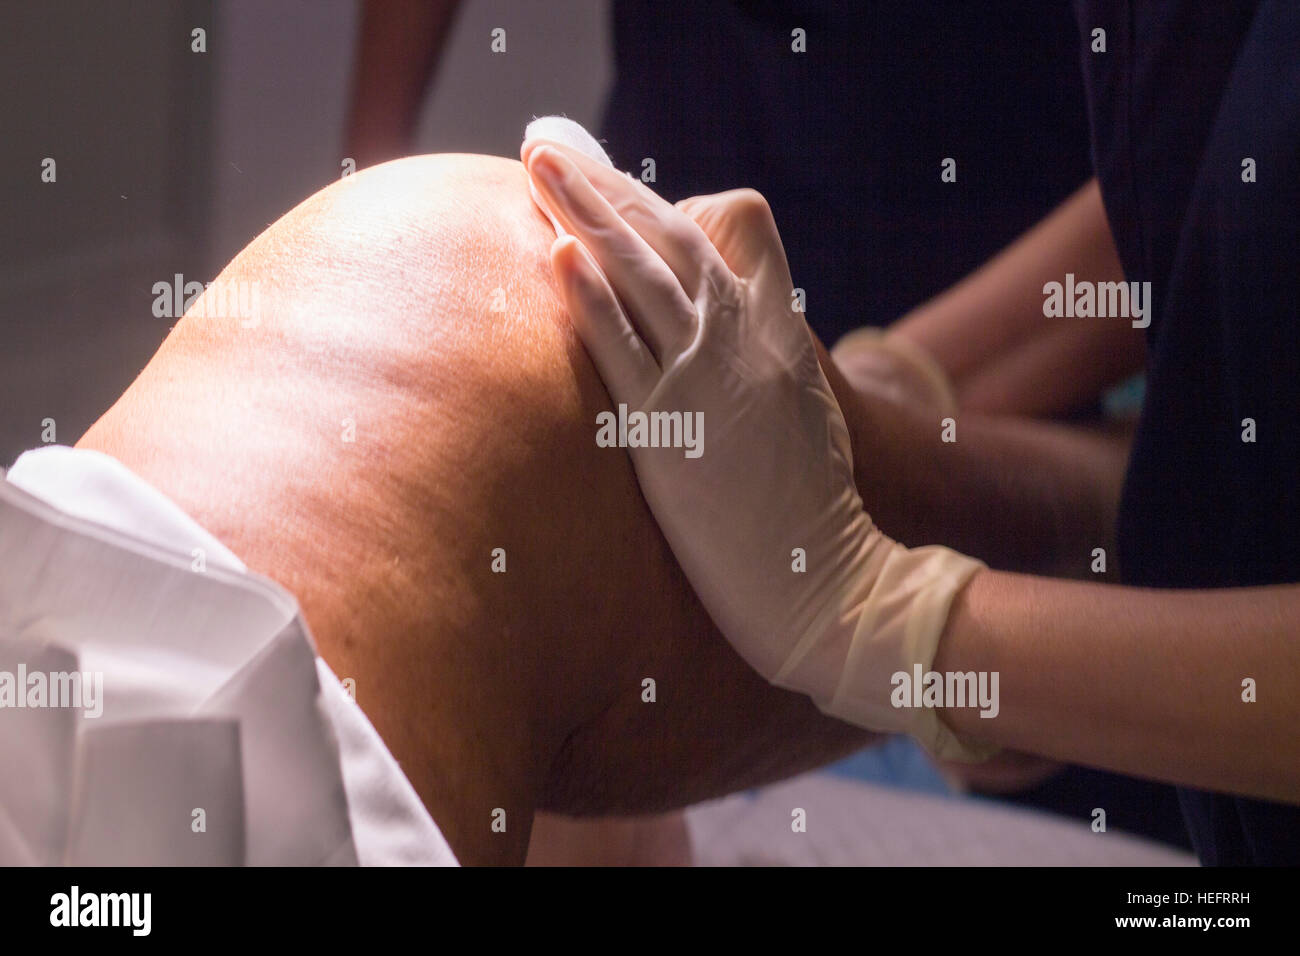 Anaesthetist pressing after anaesthetics injection before for surgical operation knee arthroscopy micro surgery - Stock Image